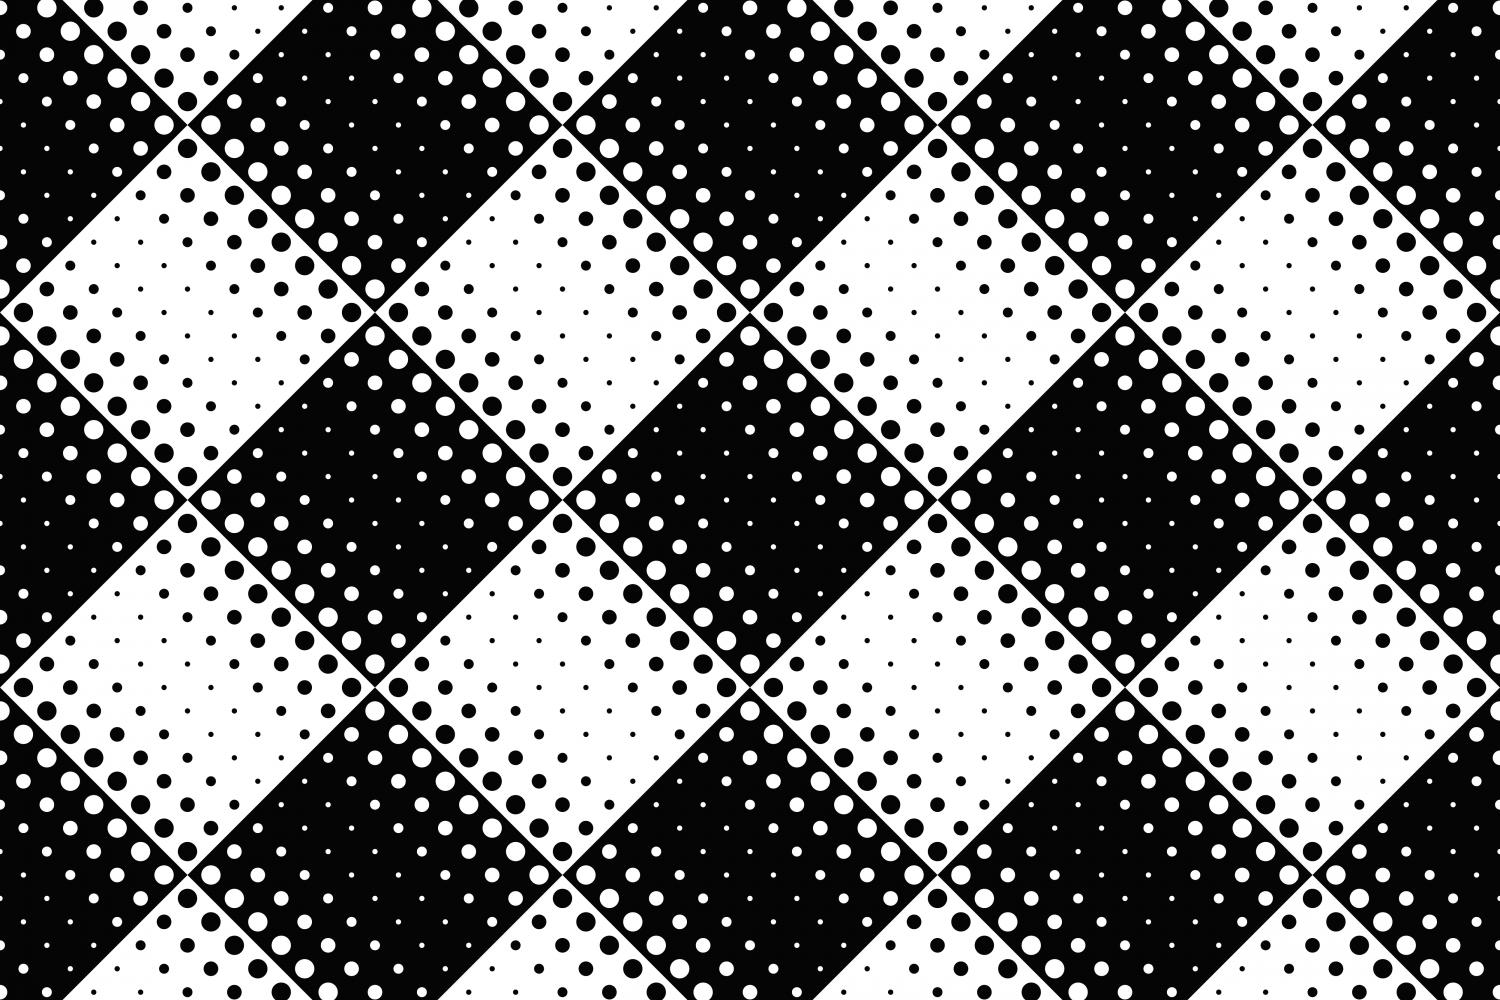 Download Free Abstract Black And White Dot Pattern Graphic By Davidzydd for Cricut Explore, Silhouette and other cutting machines.